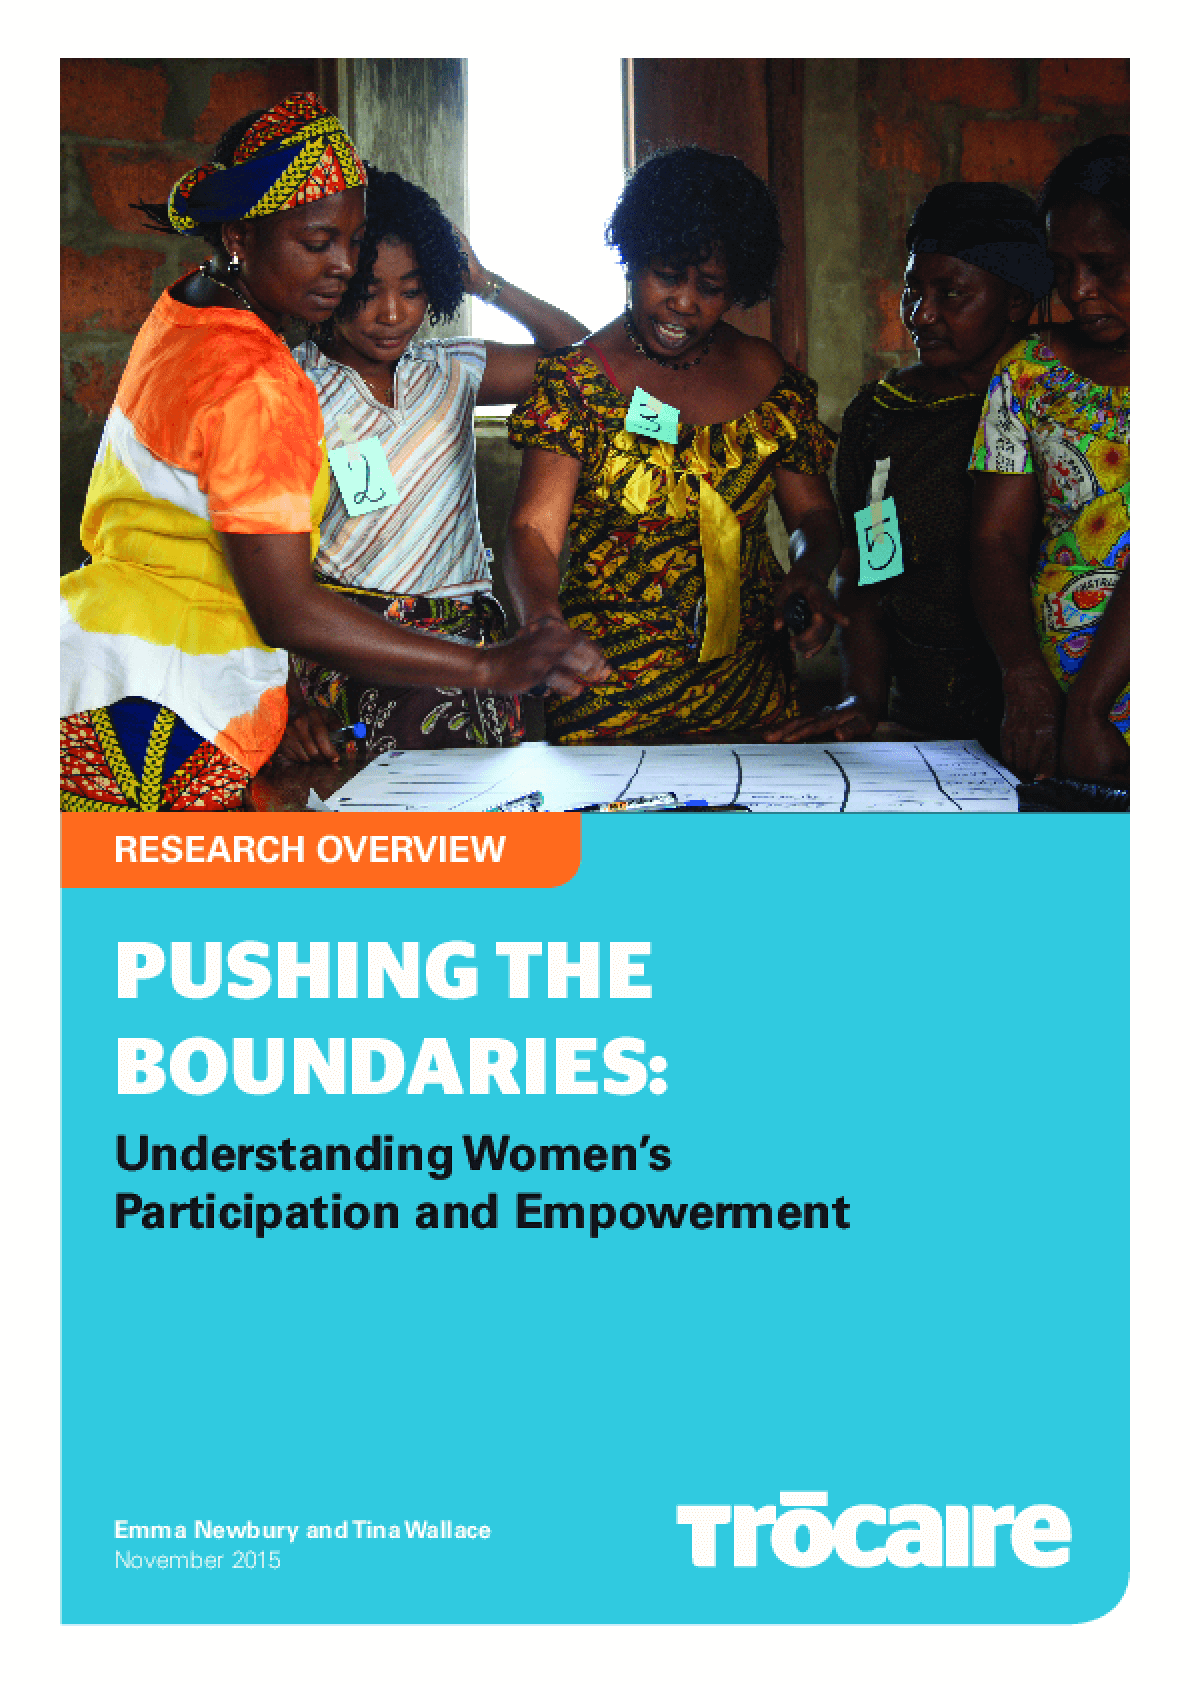 Pushing the Boundaries: Understanding Women's Participation and Empowerment